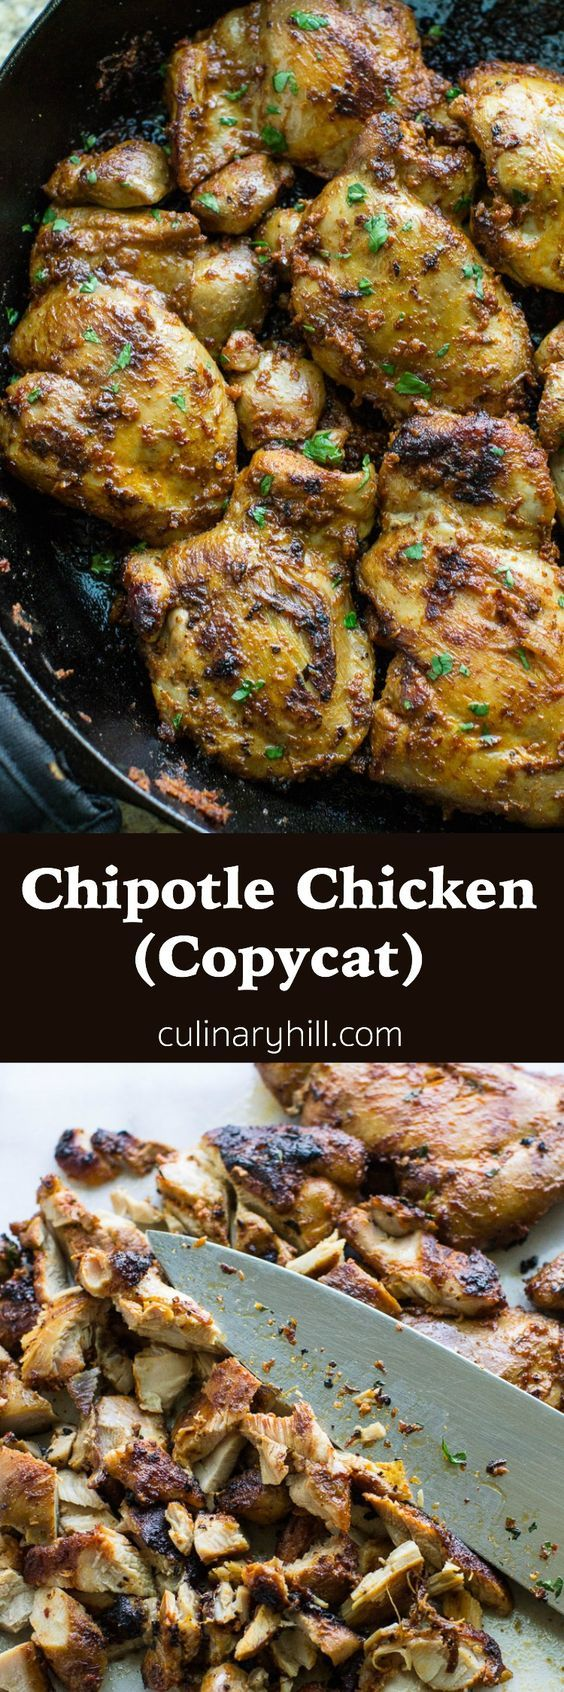 Chipotle Chicken copycat recipe--recipe yields 2c. marinade, should be enough for 10lbs of chicken